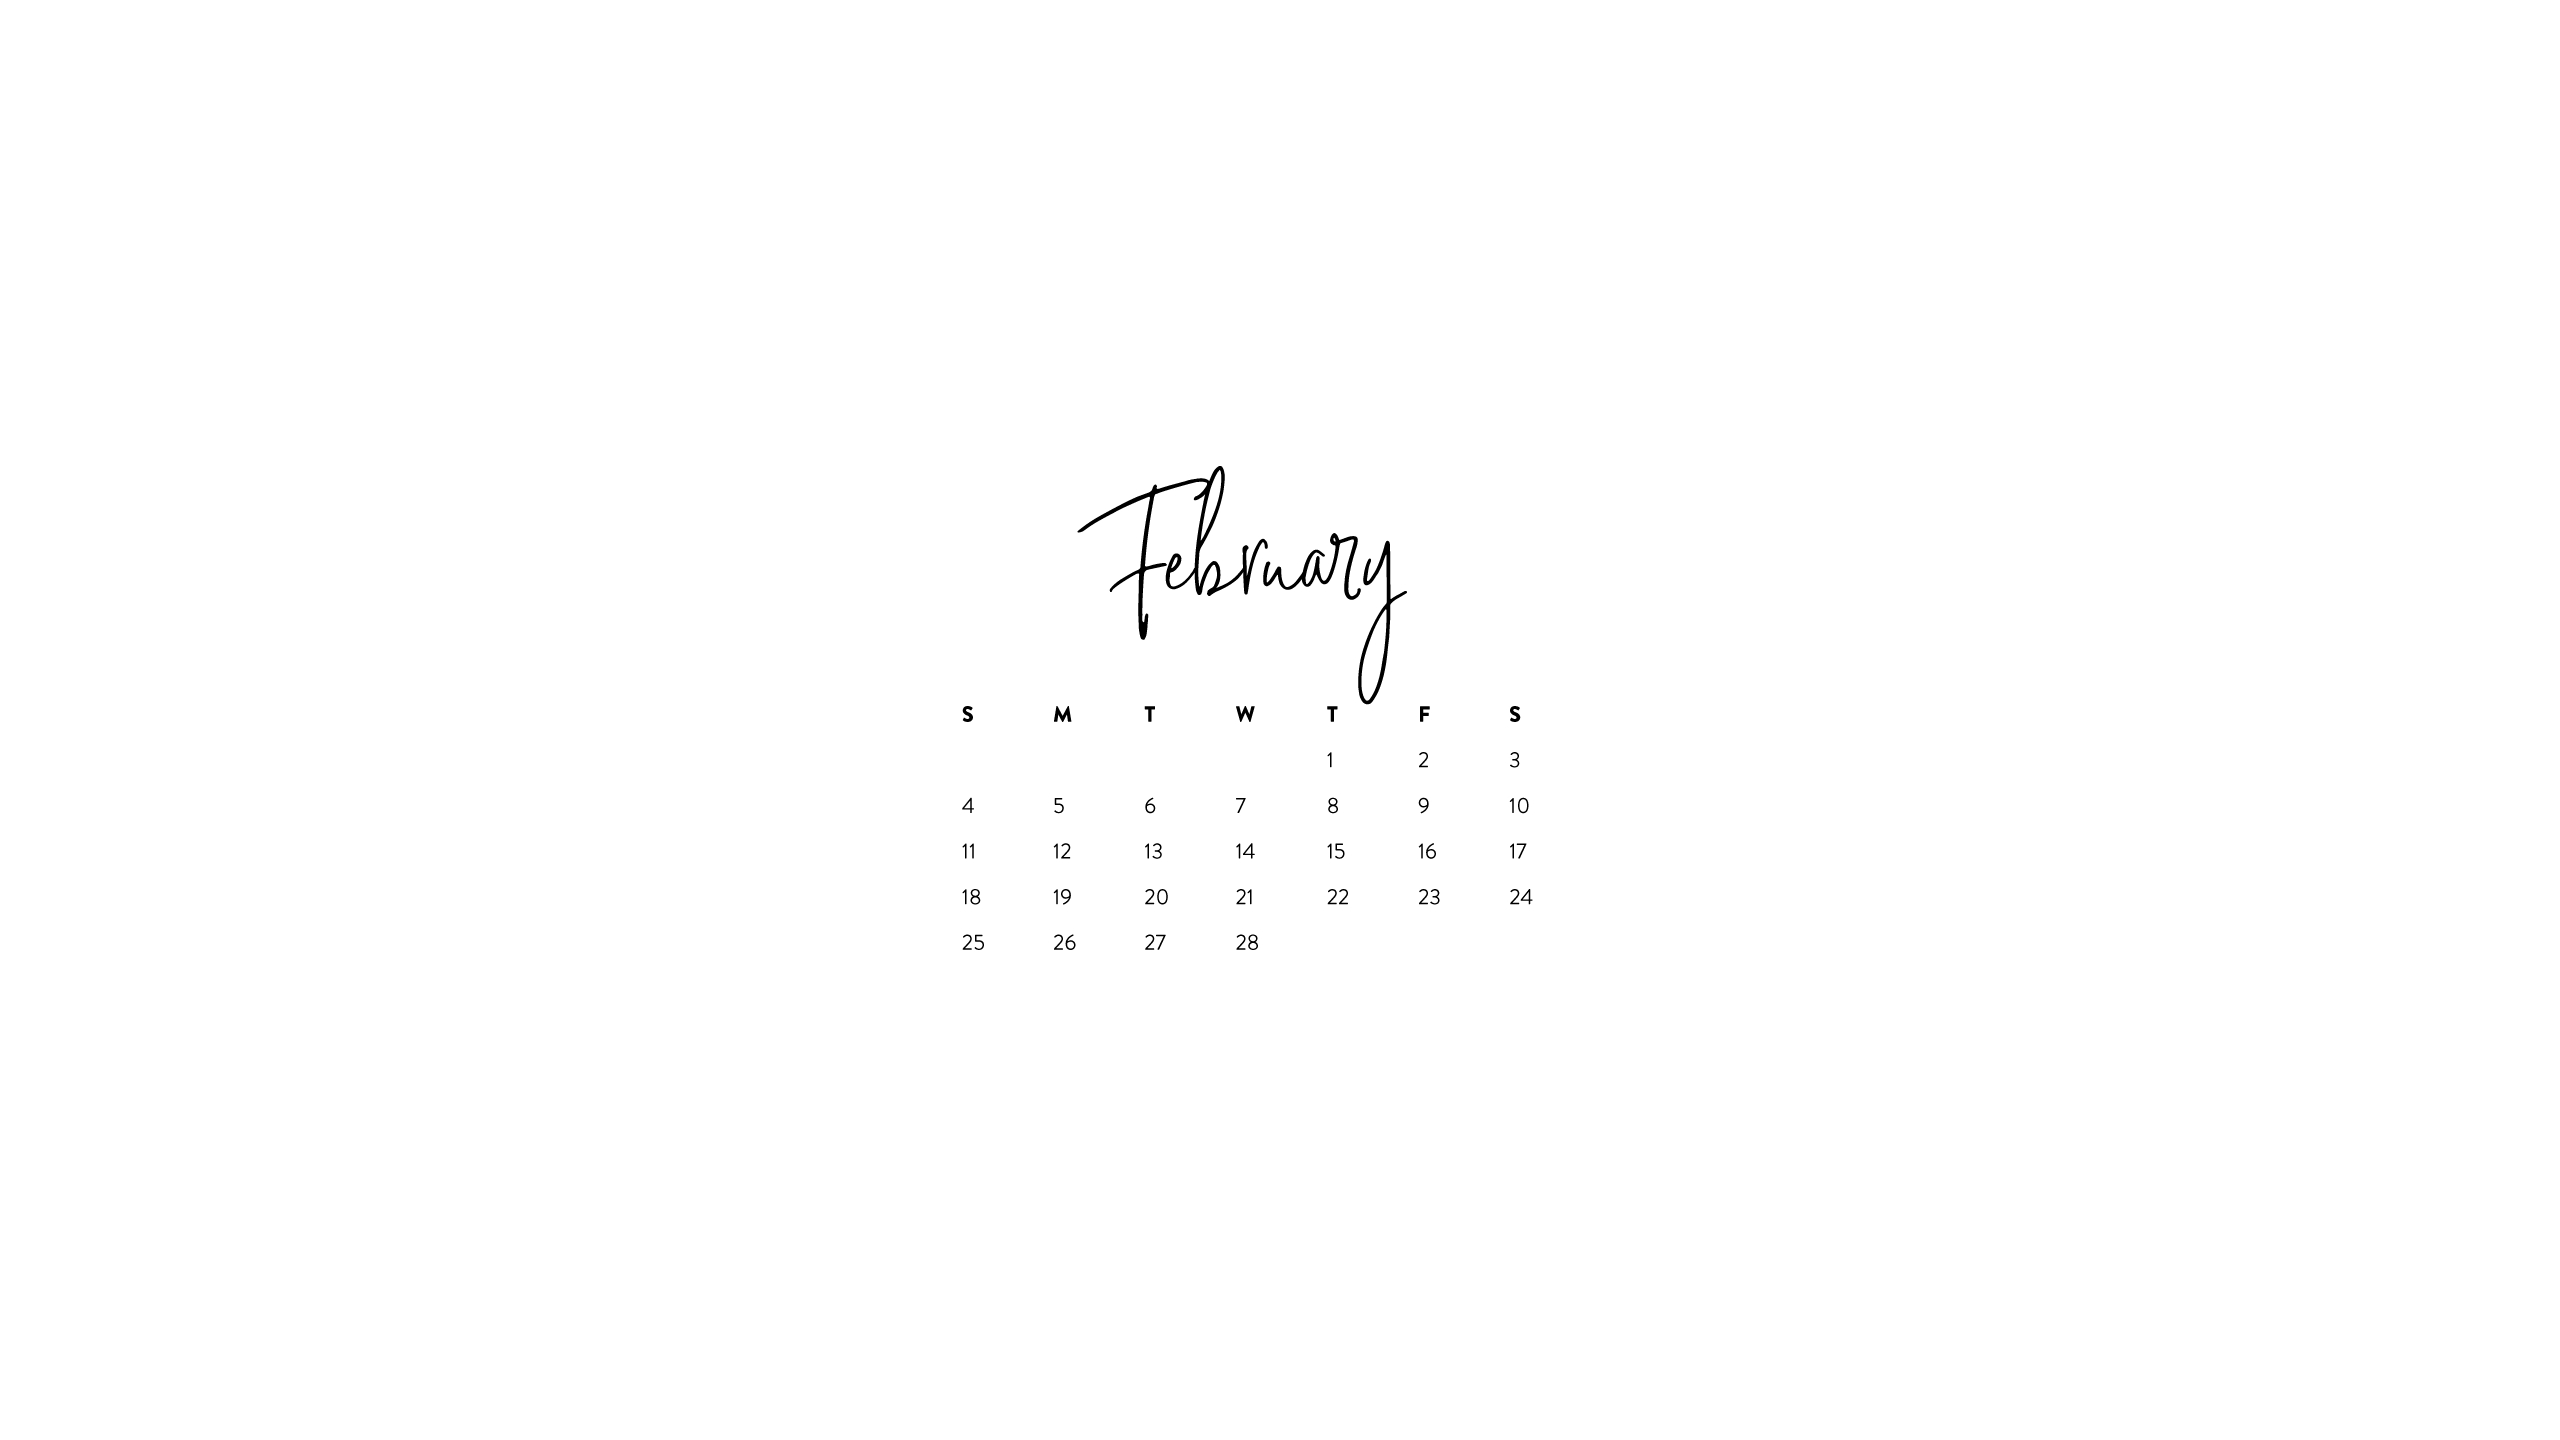 printables downloads ashlee proffitt::February 2019 iPhone Calendar Wallpaper